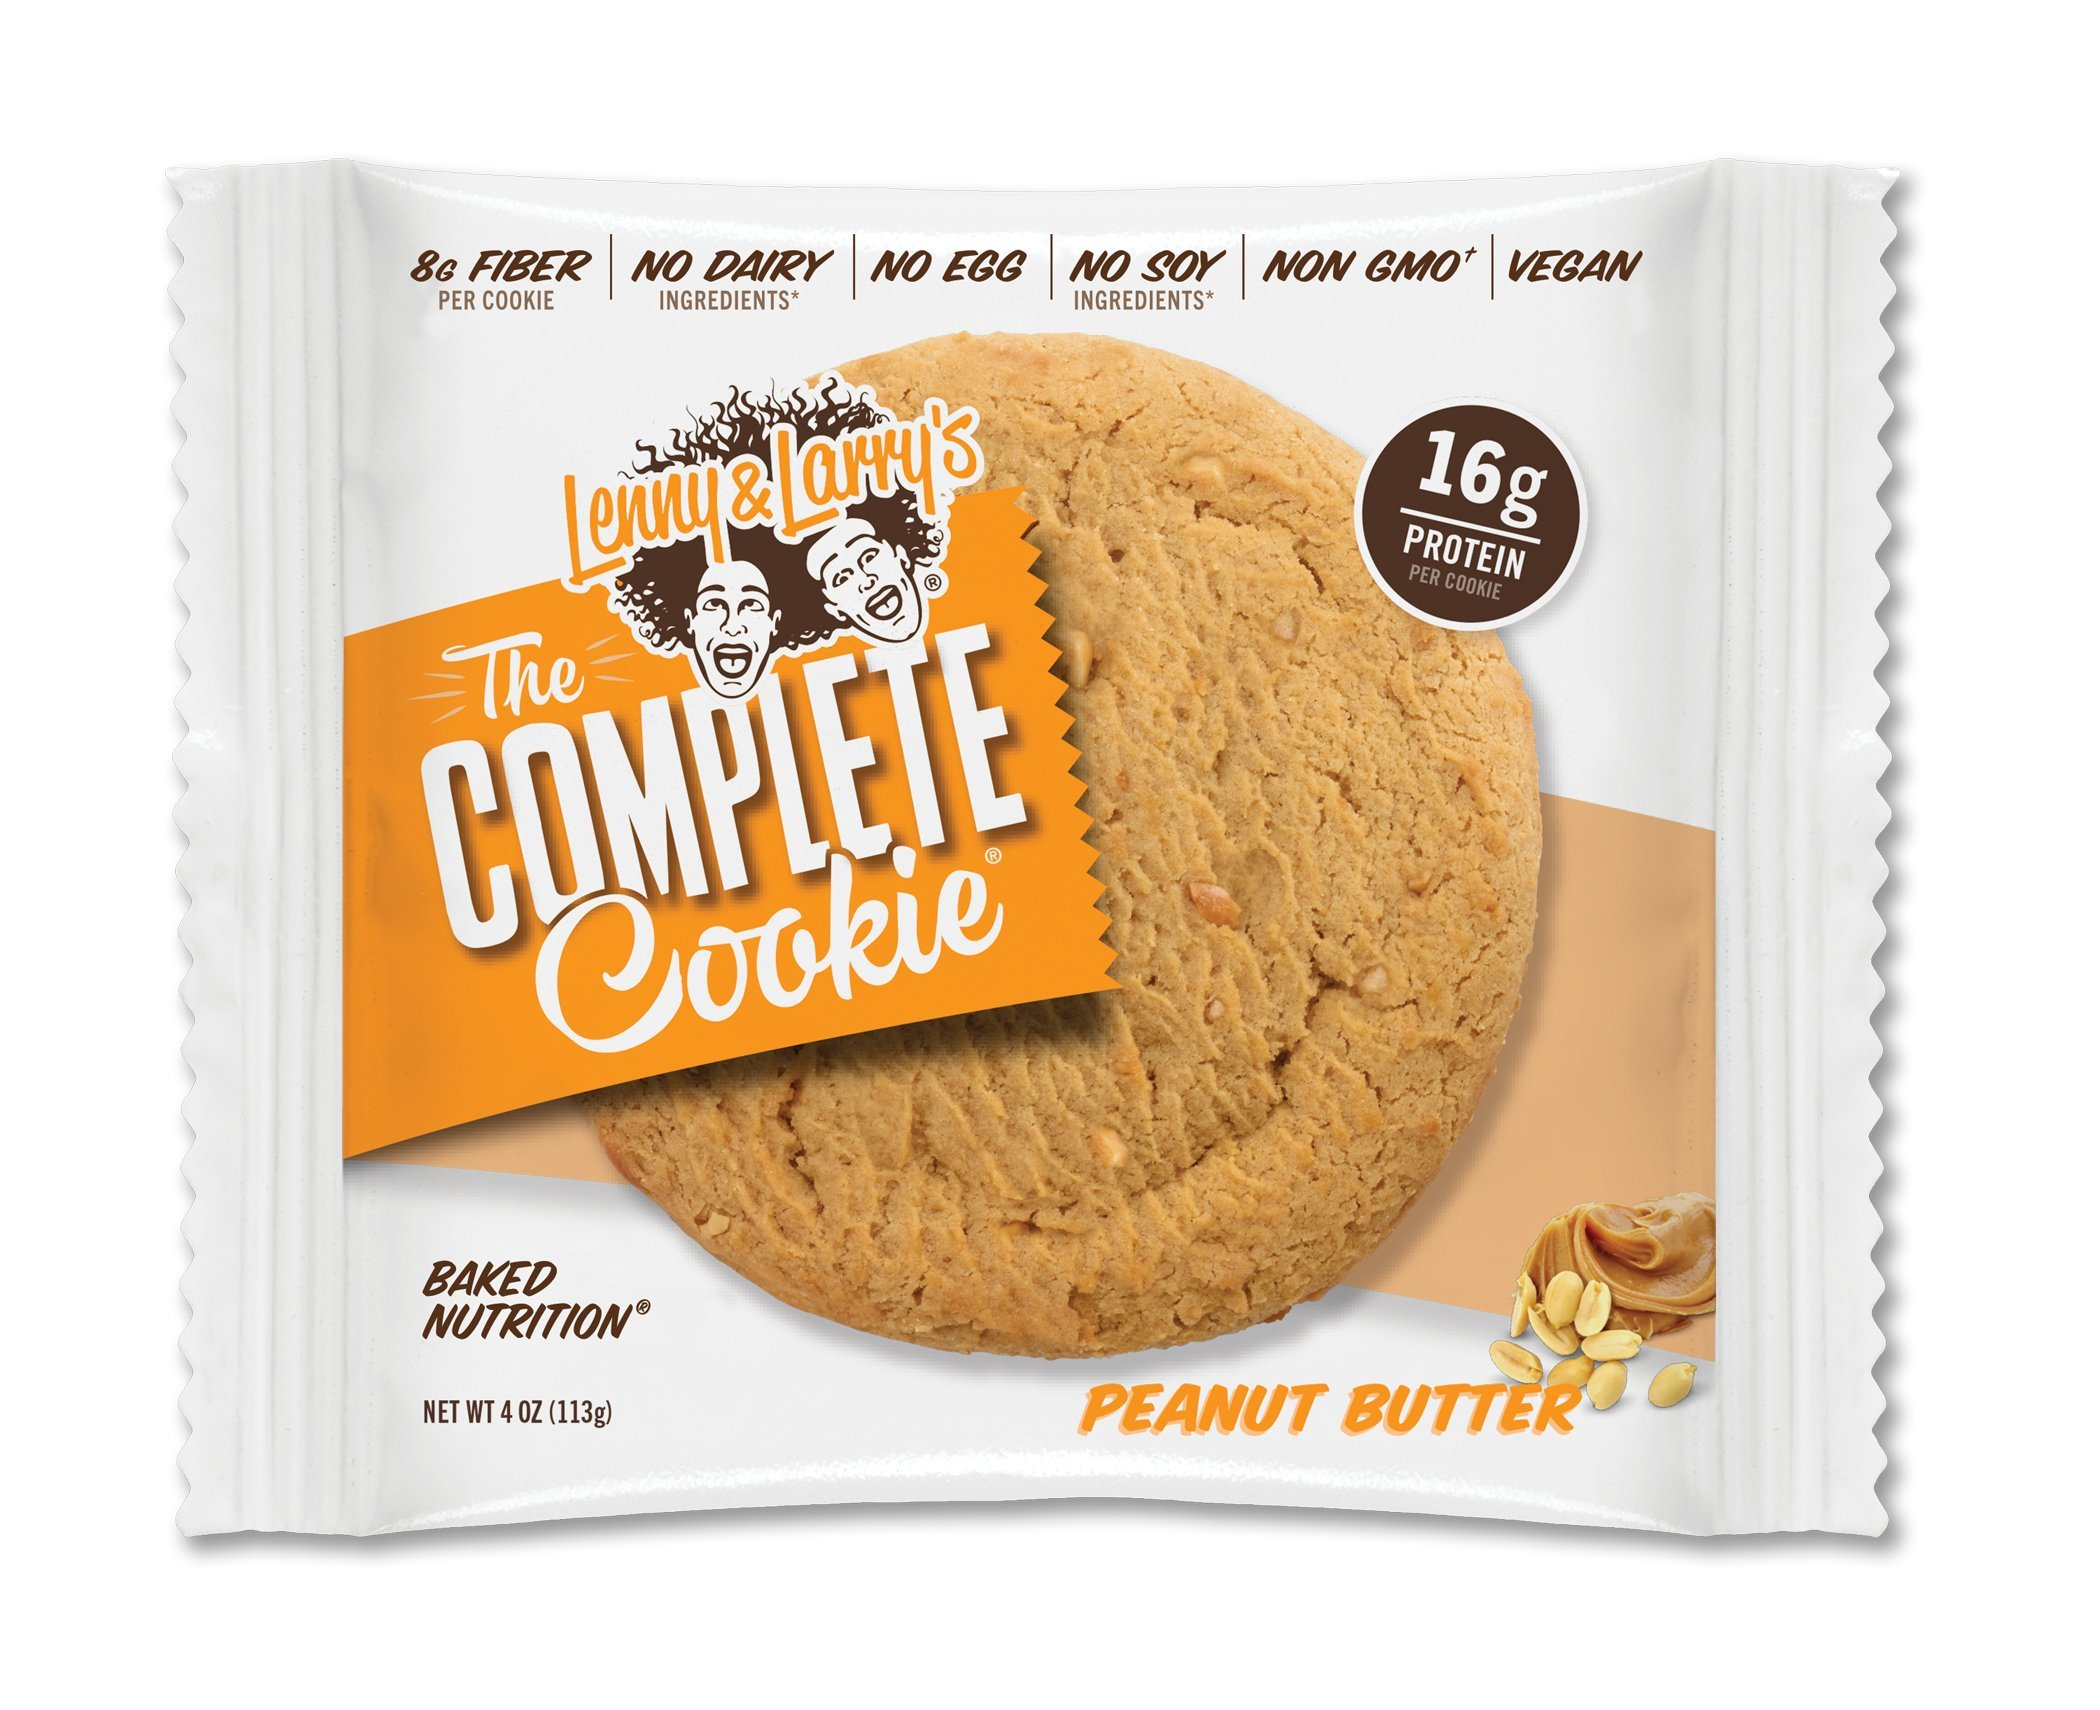 Lenny & Larry's The Complete Cookie, Peanut Butter, 4 Ounce Cookies - 12 Count, Soft Baked, Vegan and Non GMO Protein Cookies by Lenny & Larry's (Image #2)